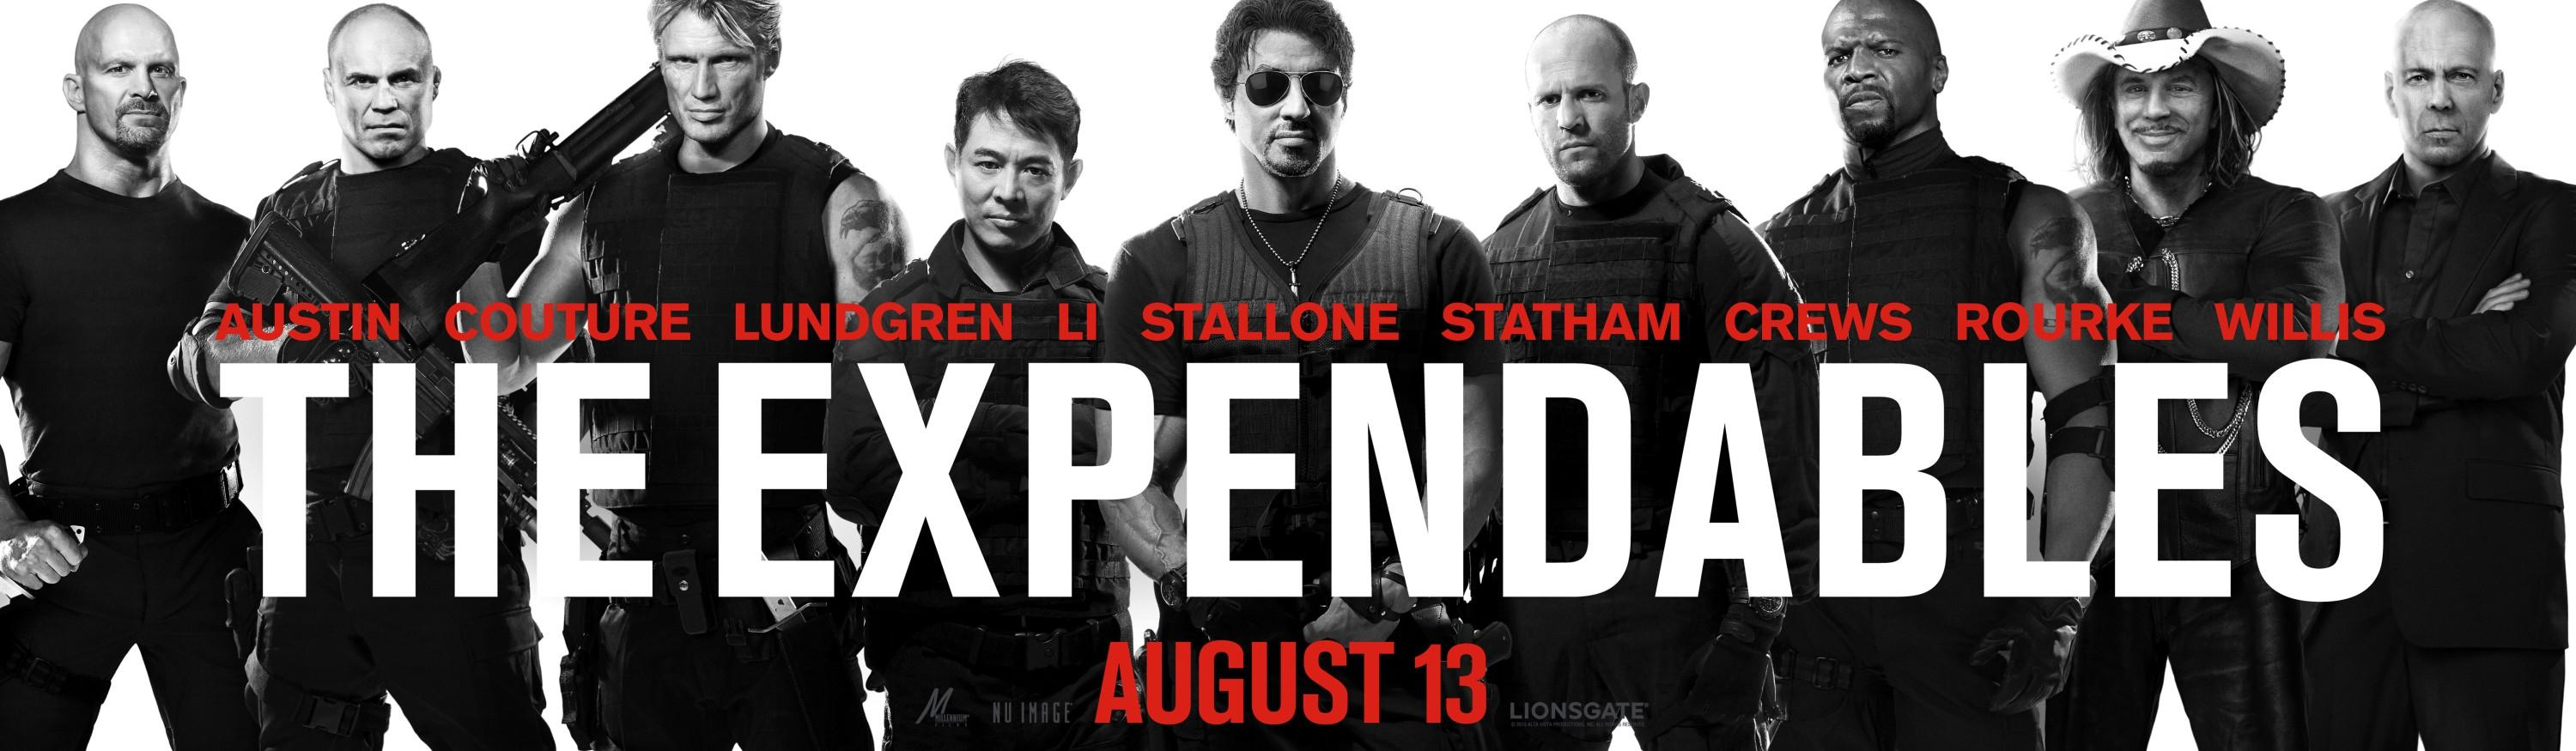 The Expendables: Extra Image Grand Movie Poster - Internet Movie Poster Gallery Prix